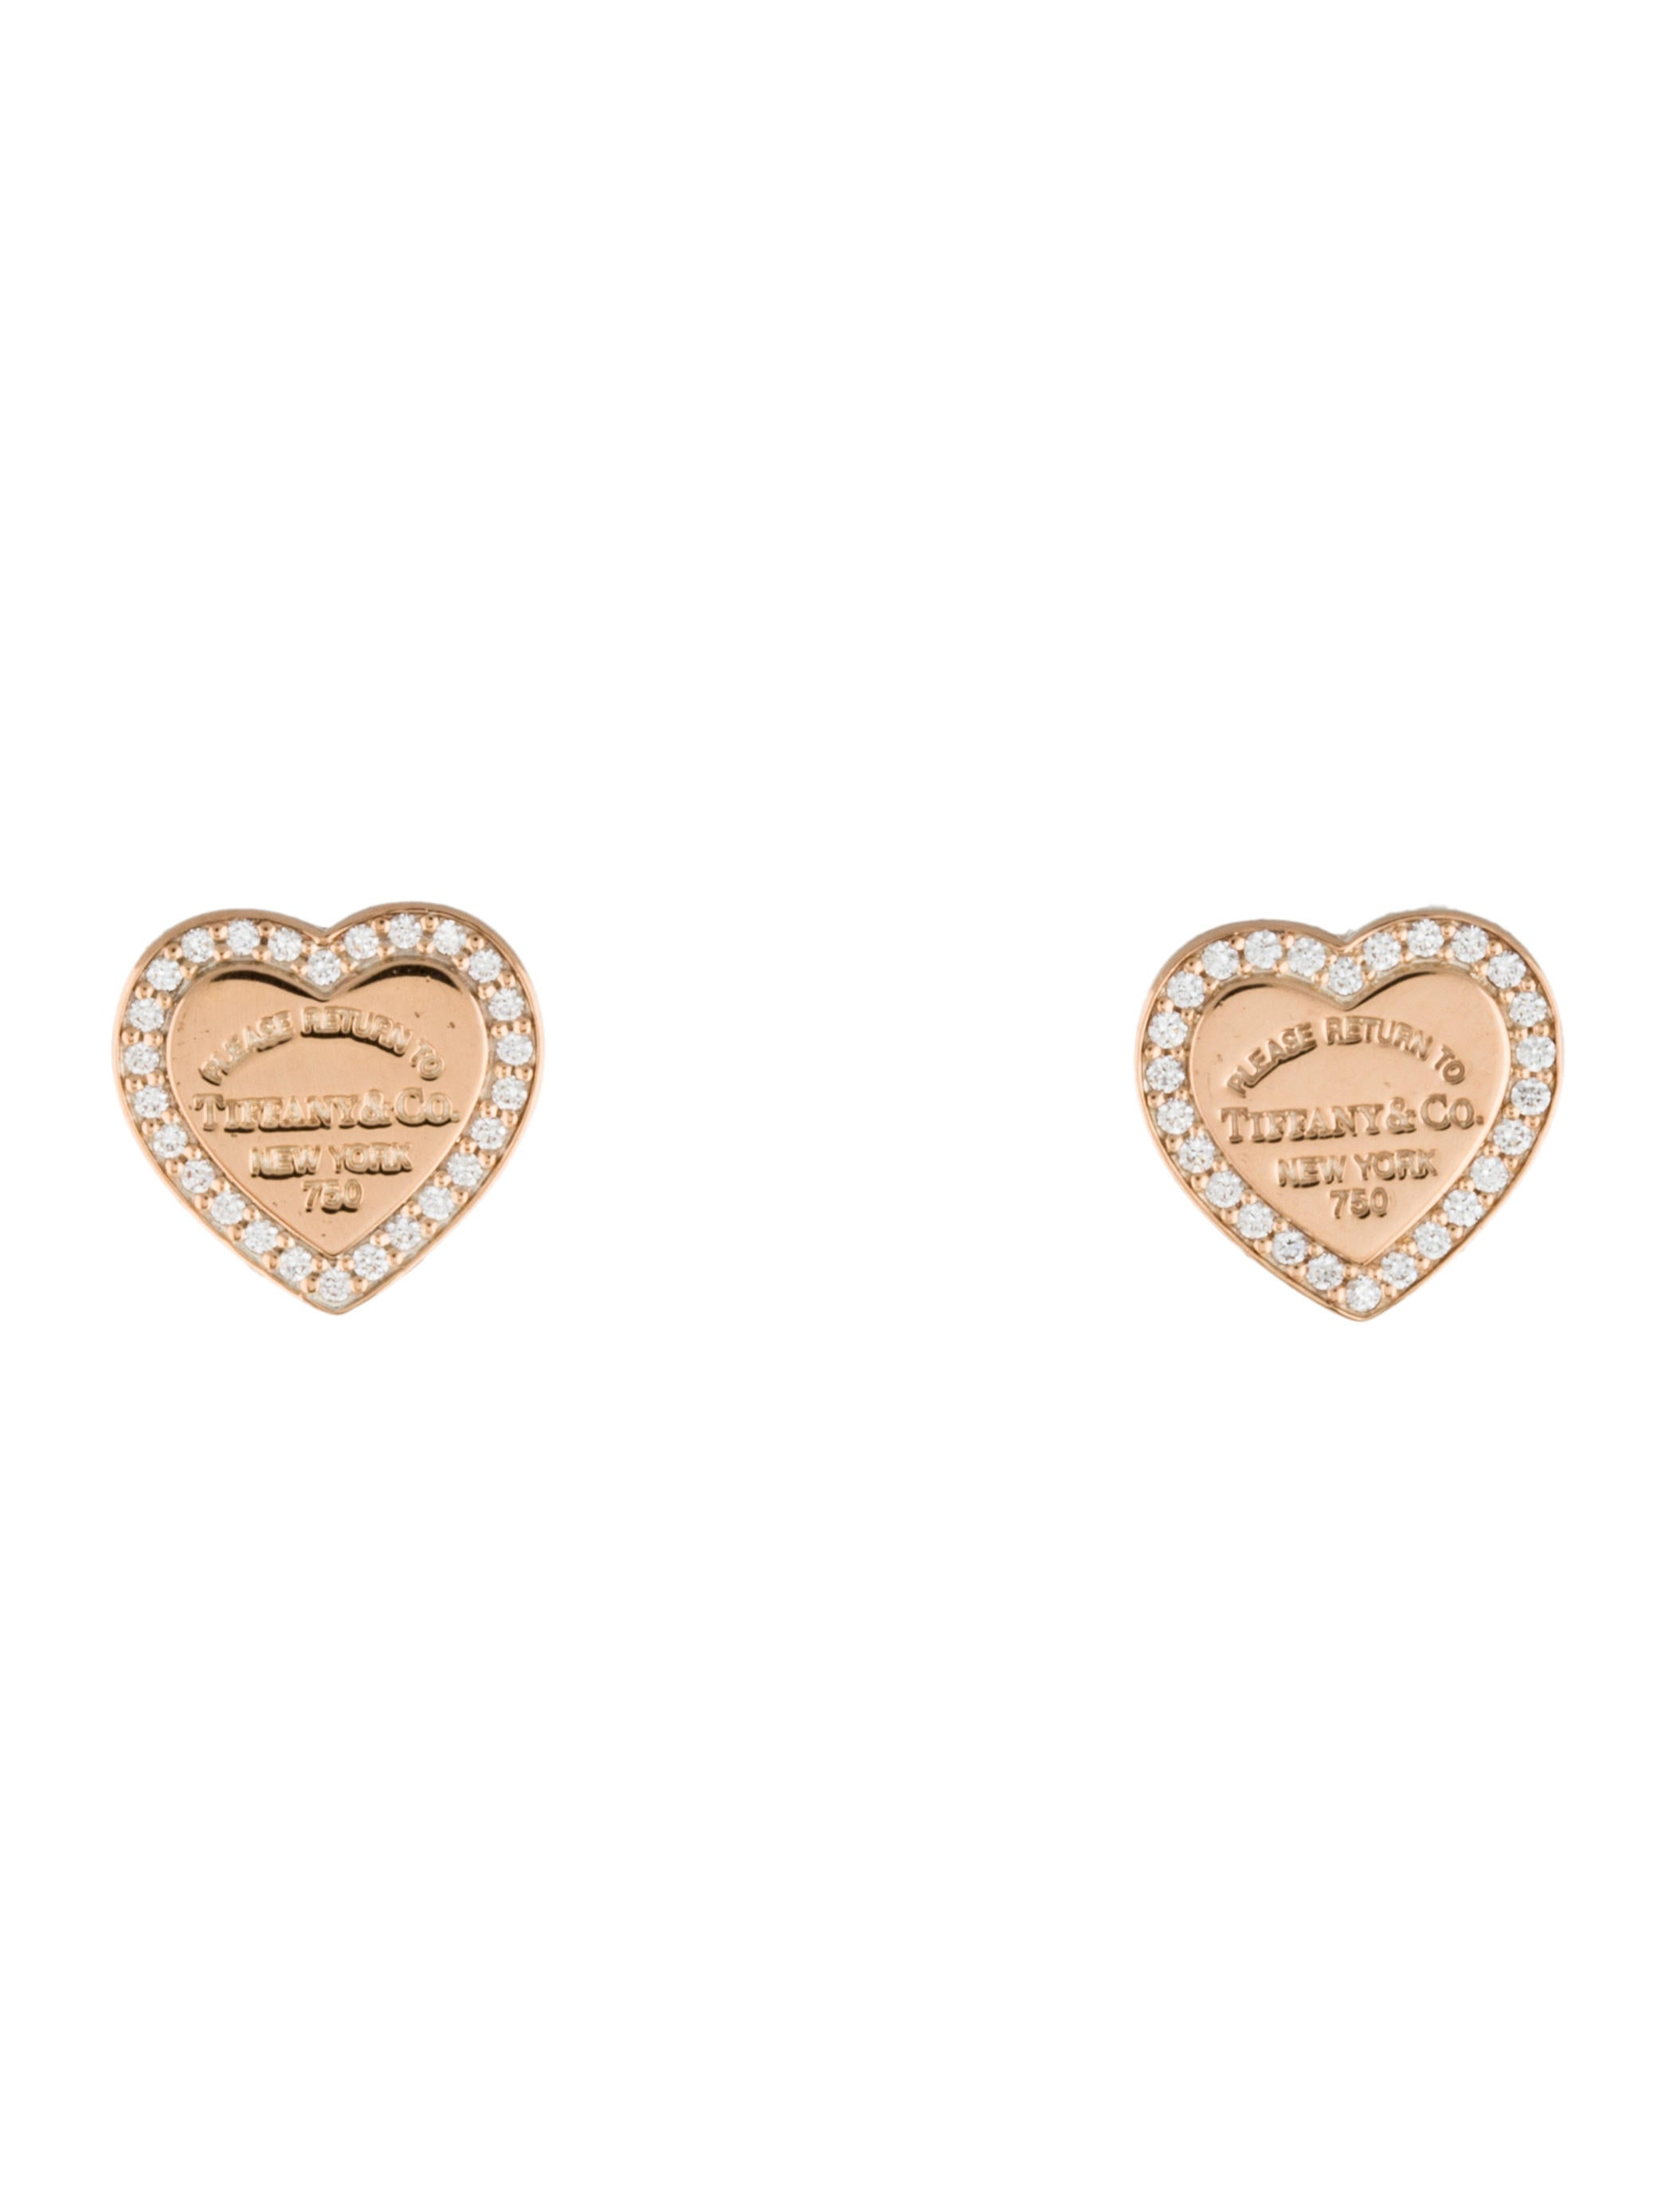 l co tiffany diamond solitaire studs best earrings